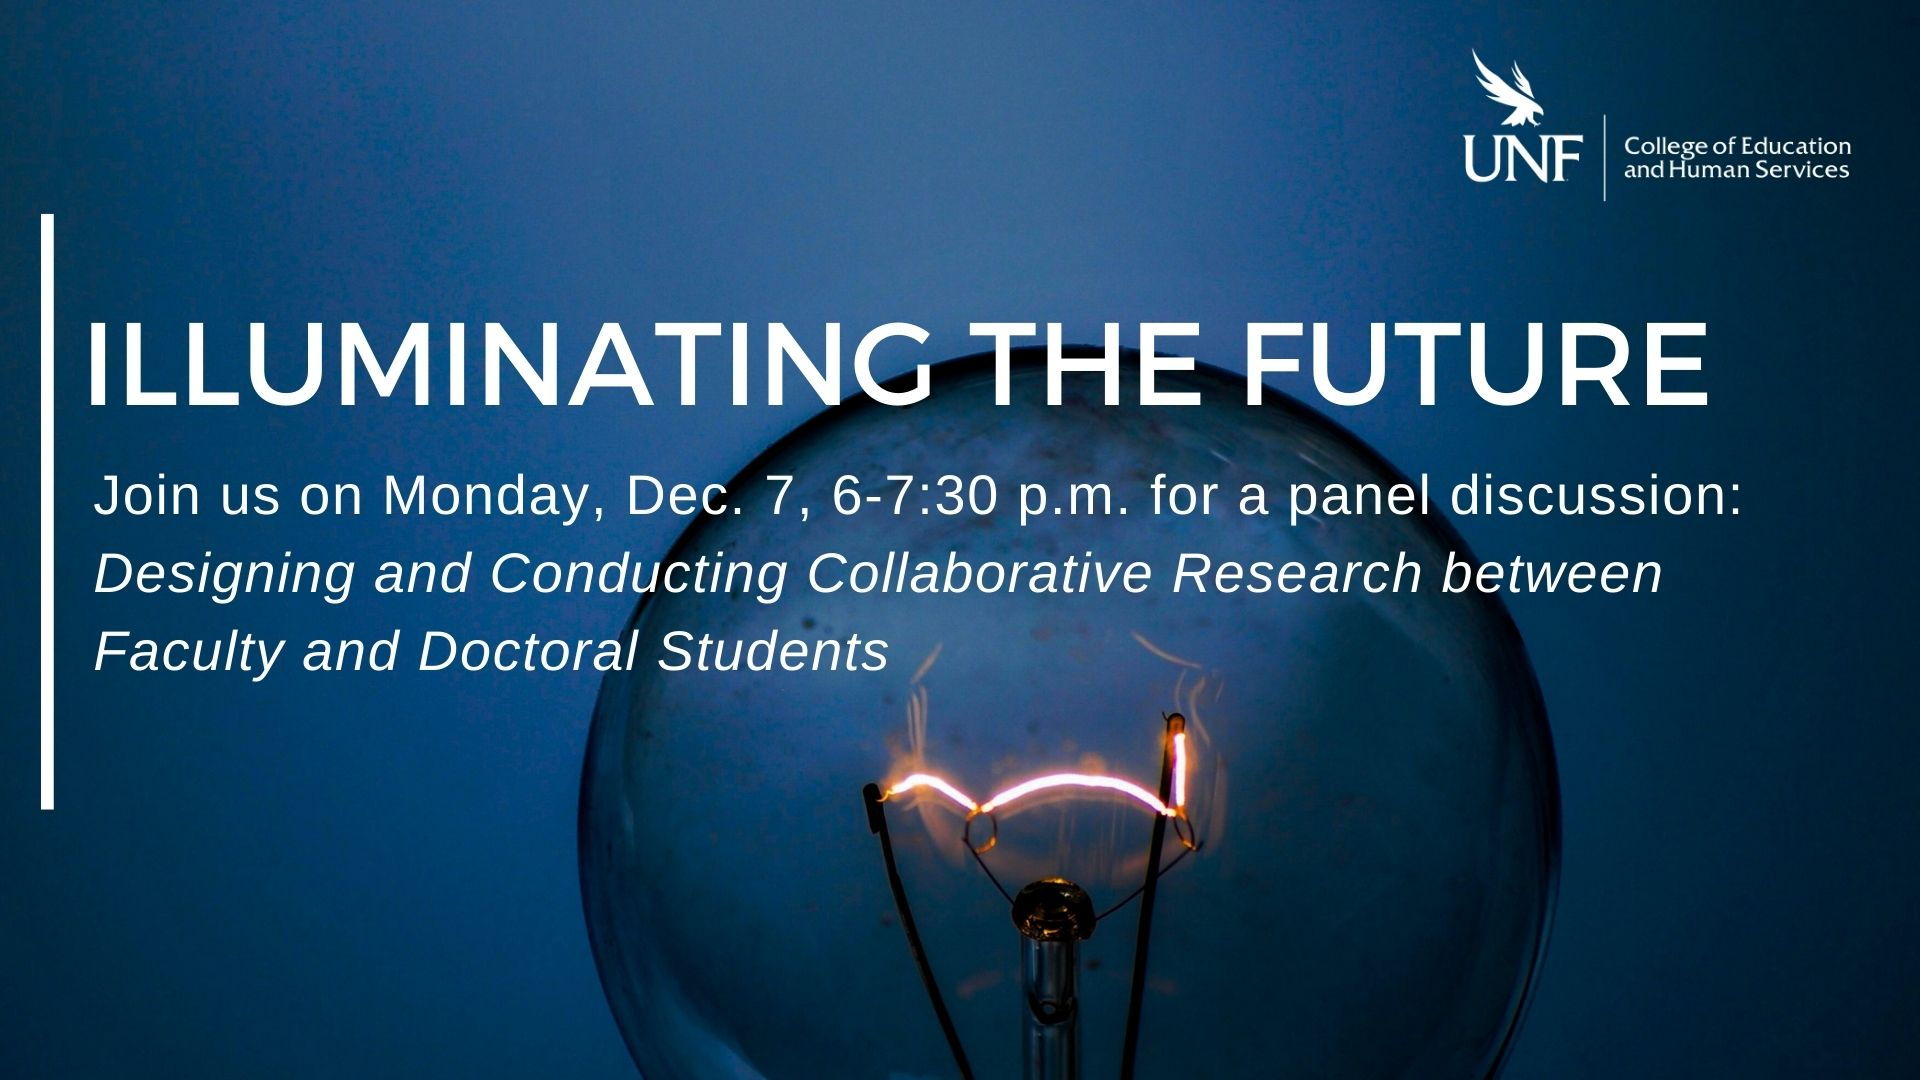 Illuminating the Future Panel Discussion Dec 7 from 6-730pm via zoom